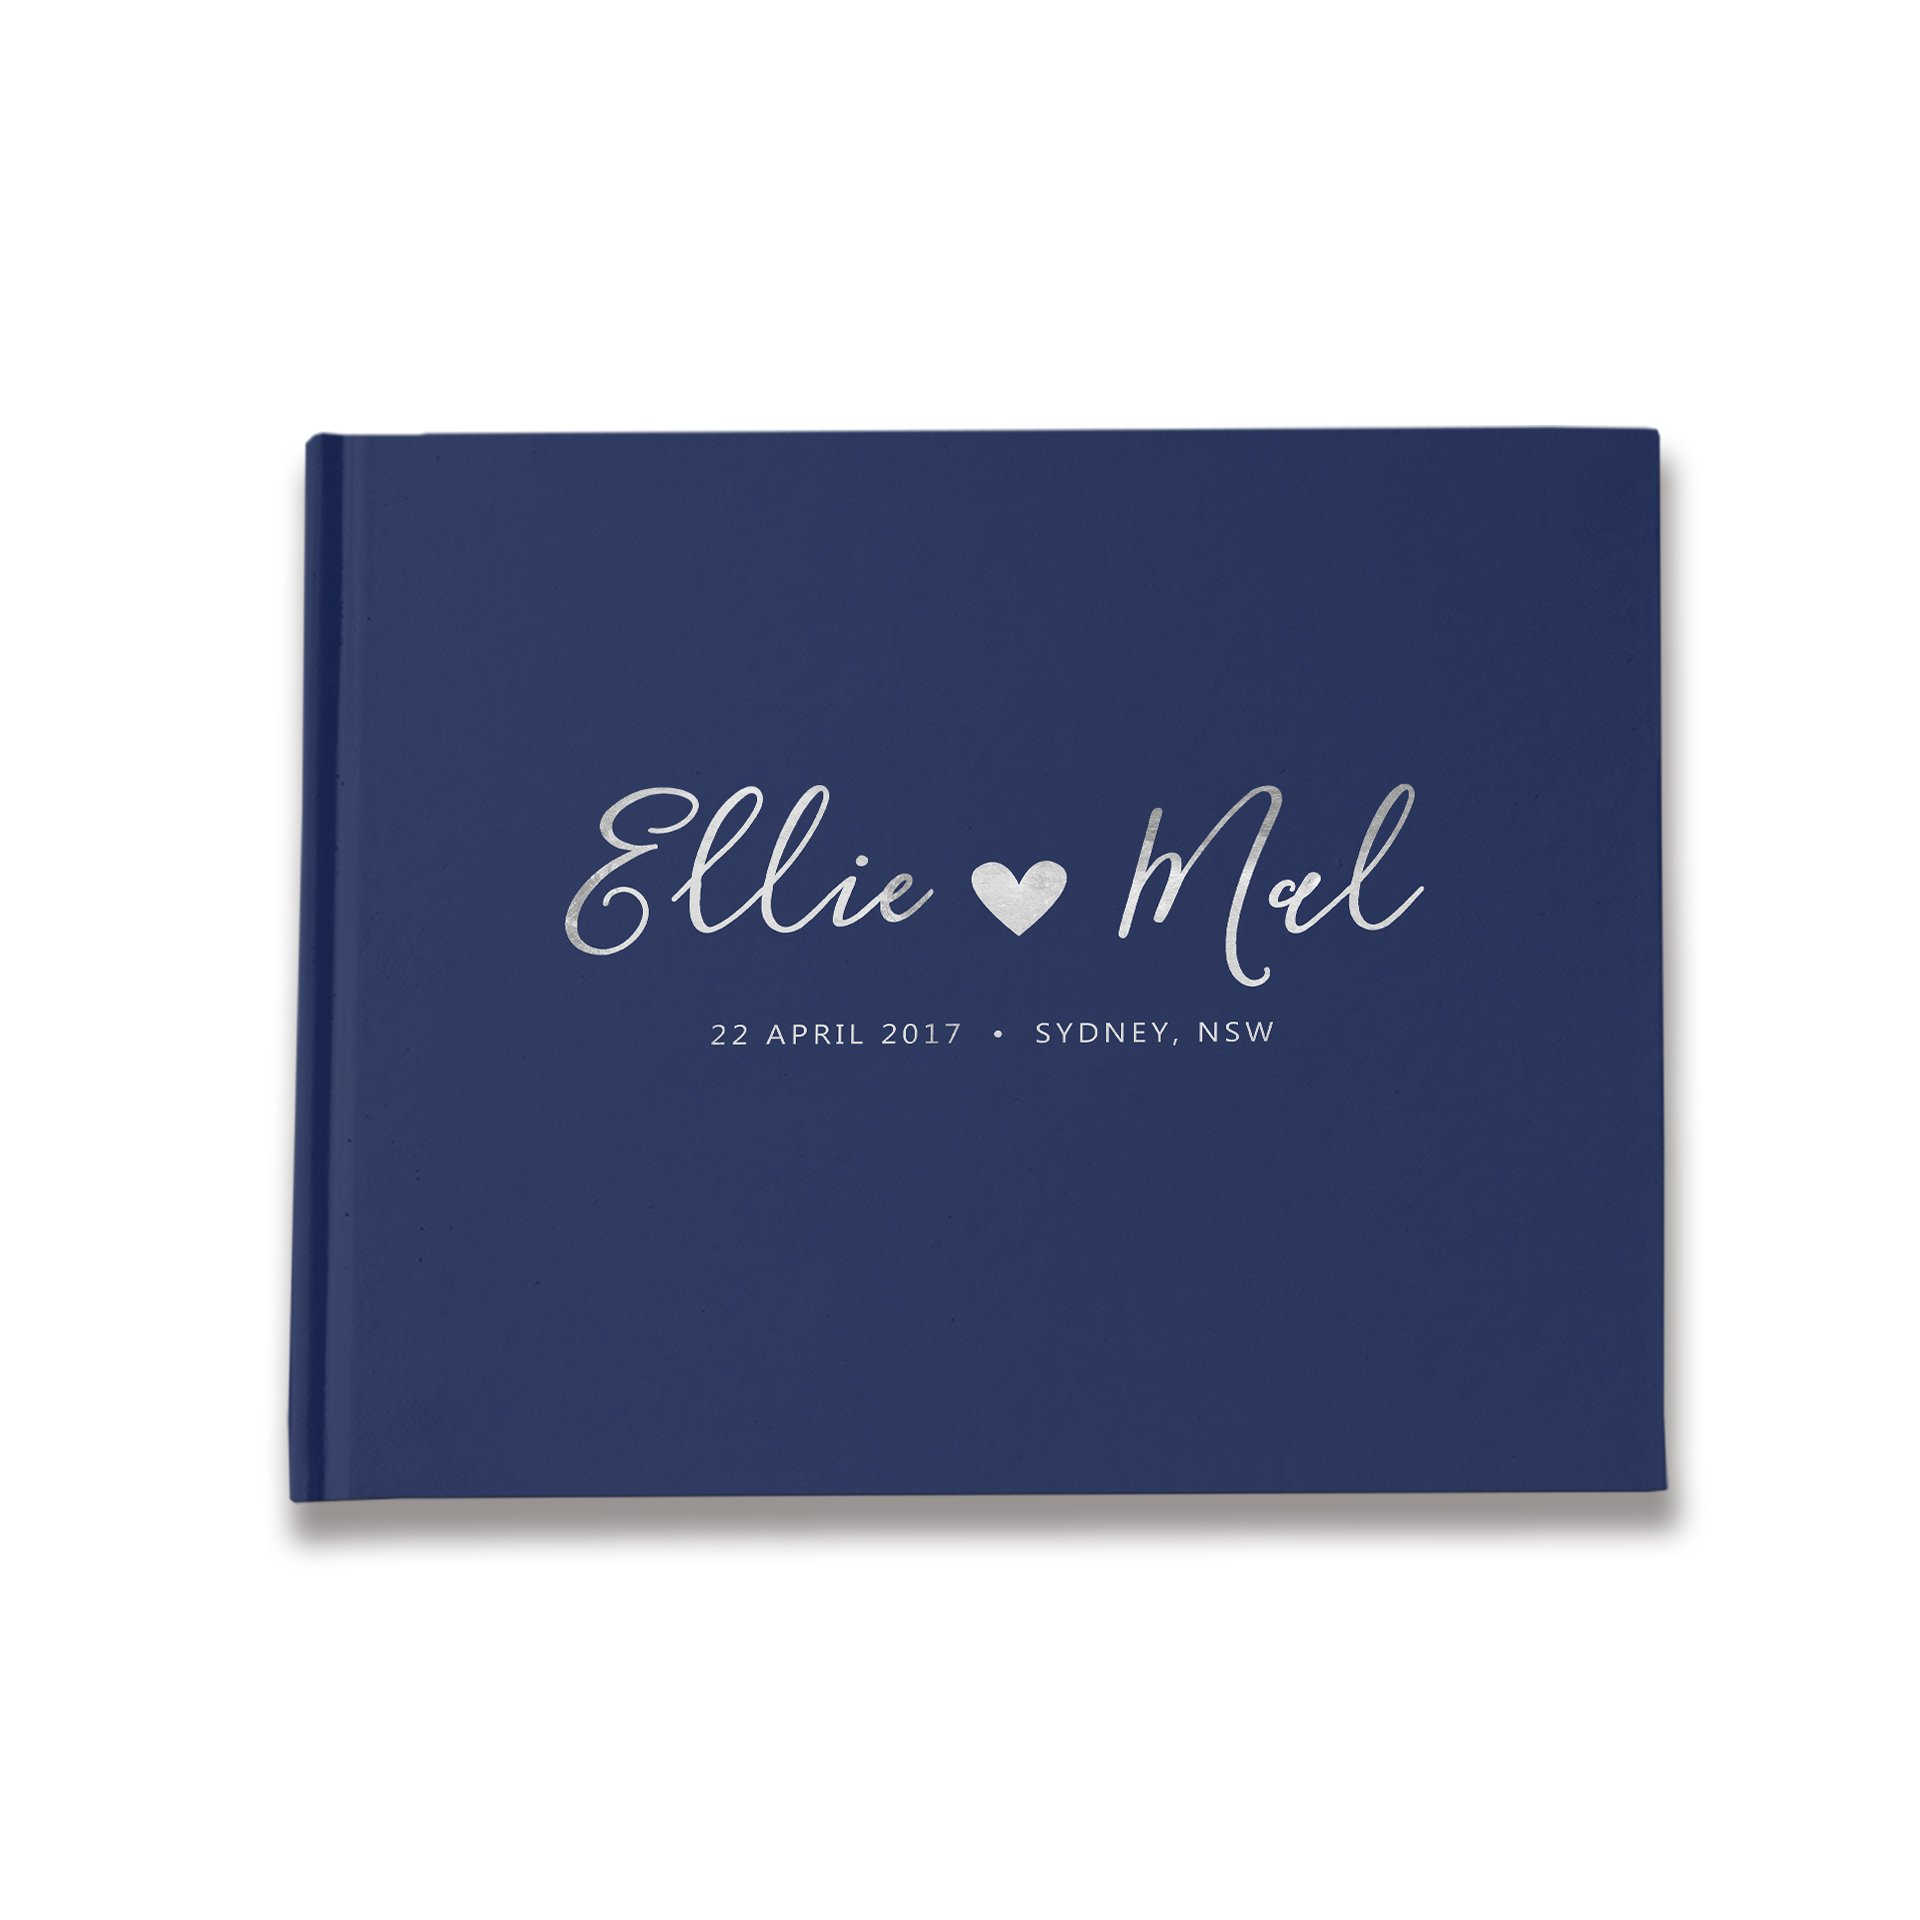 Paper Bound Love Navy Wedding Guest Book Personalized, Wedding Signature Book, Wedding Well Wishes Book (10 x 8 inches)